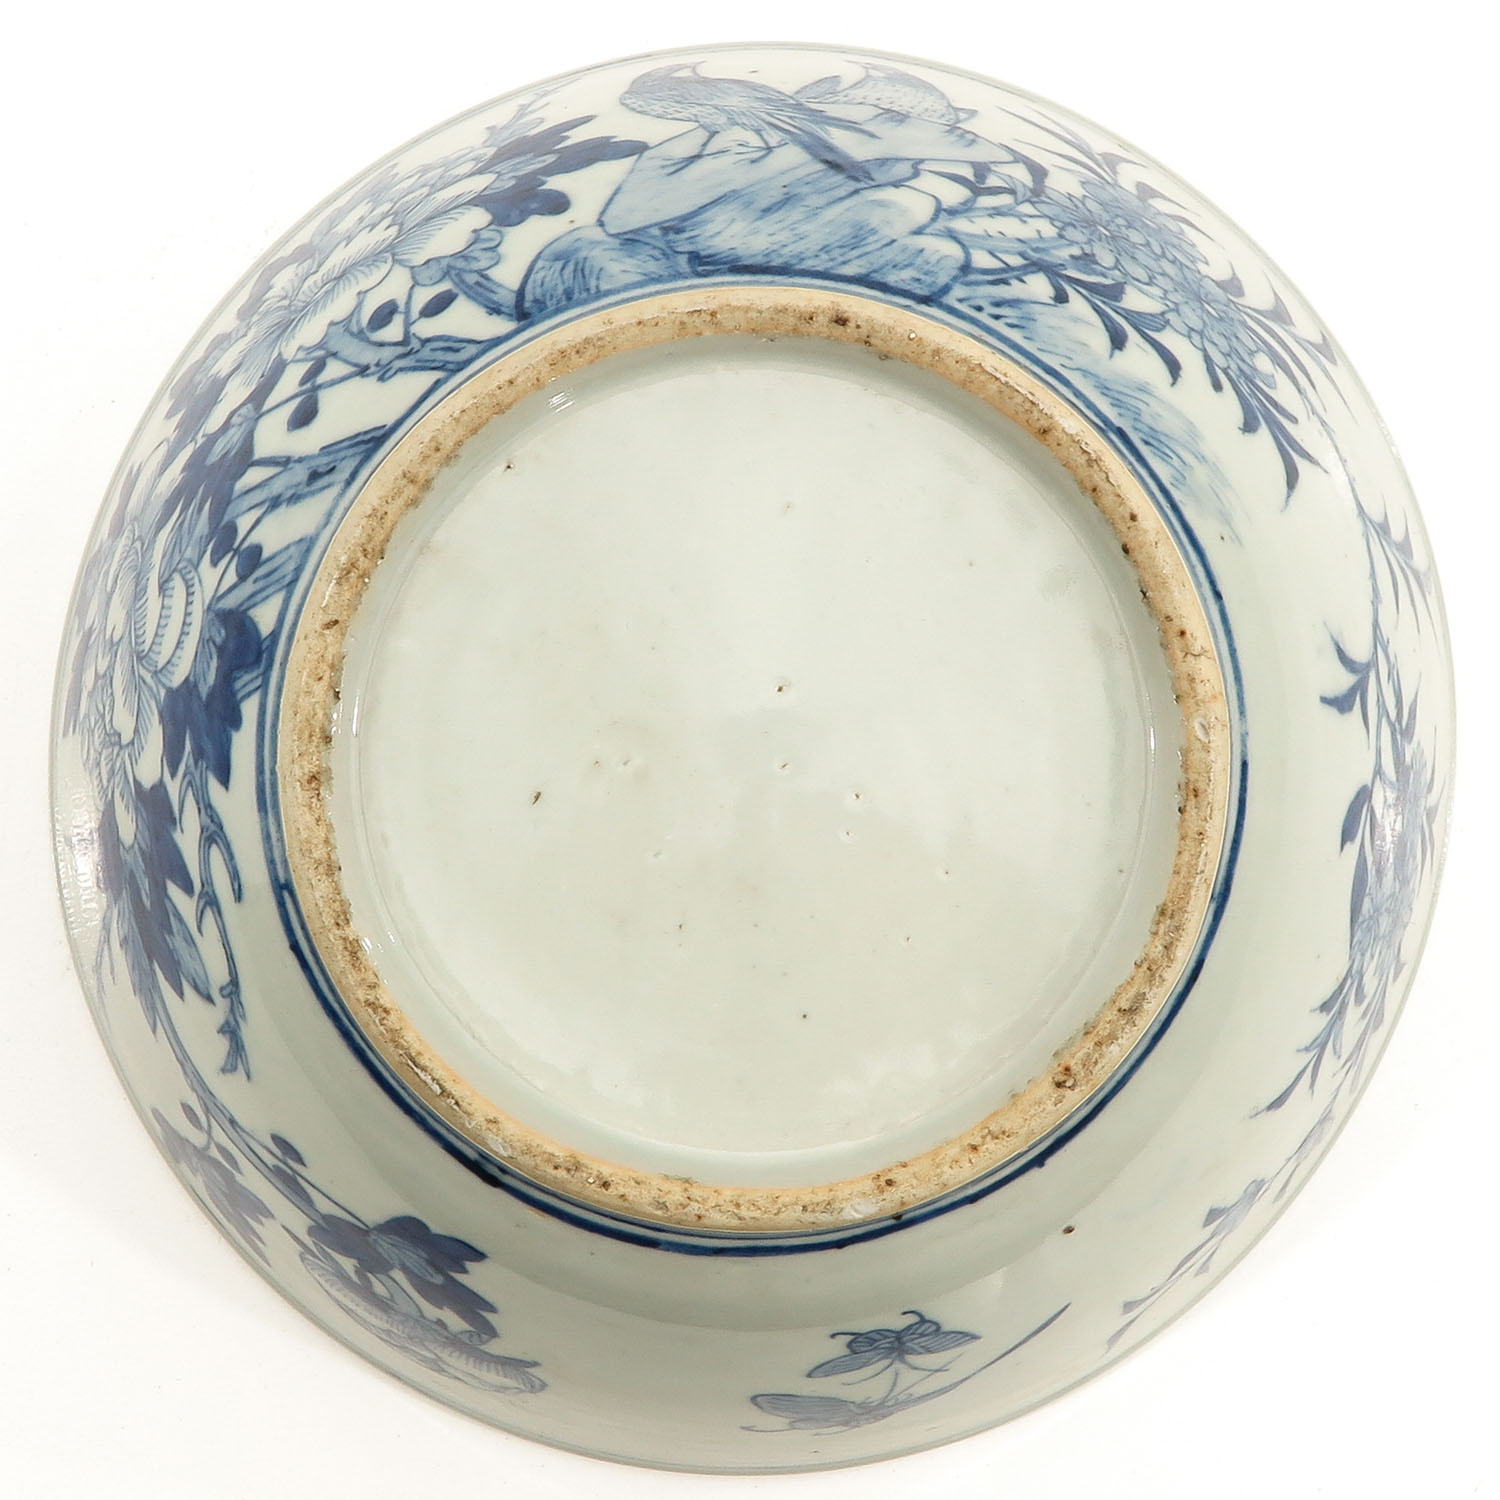 A Blue and White Bowl - Image 6 of 9